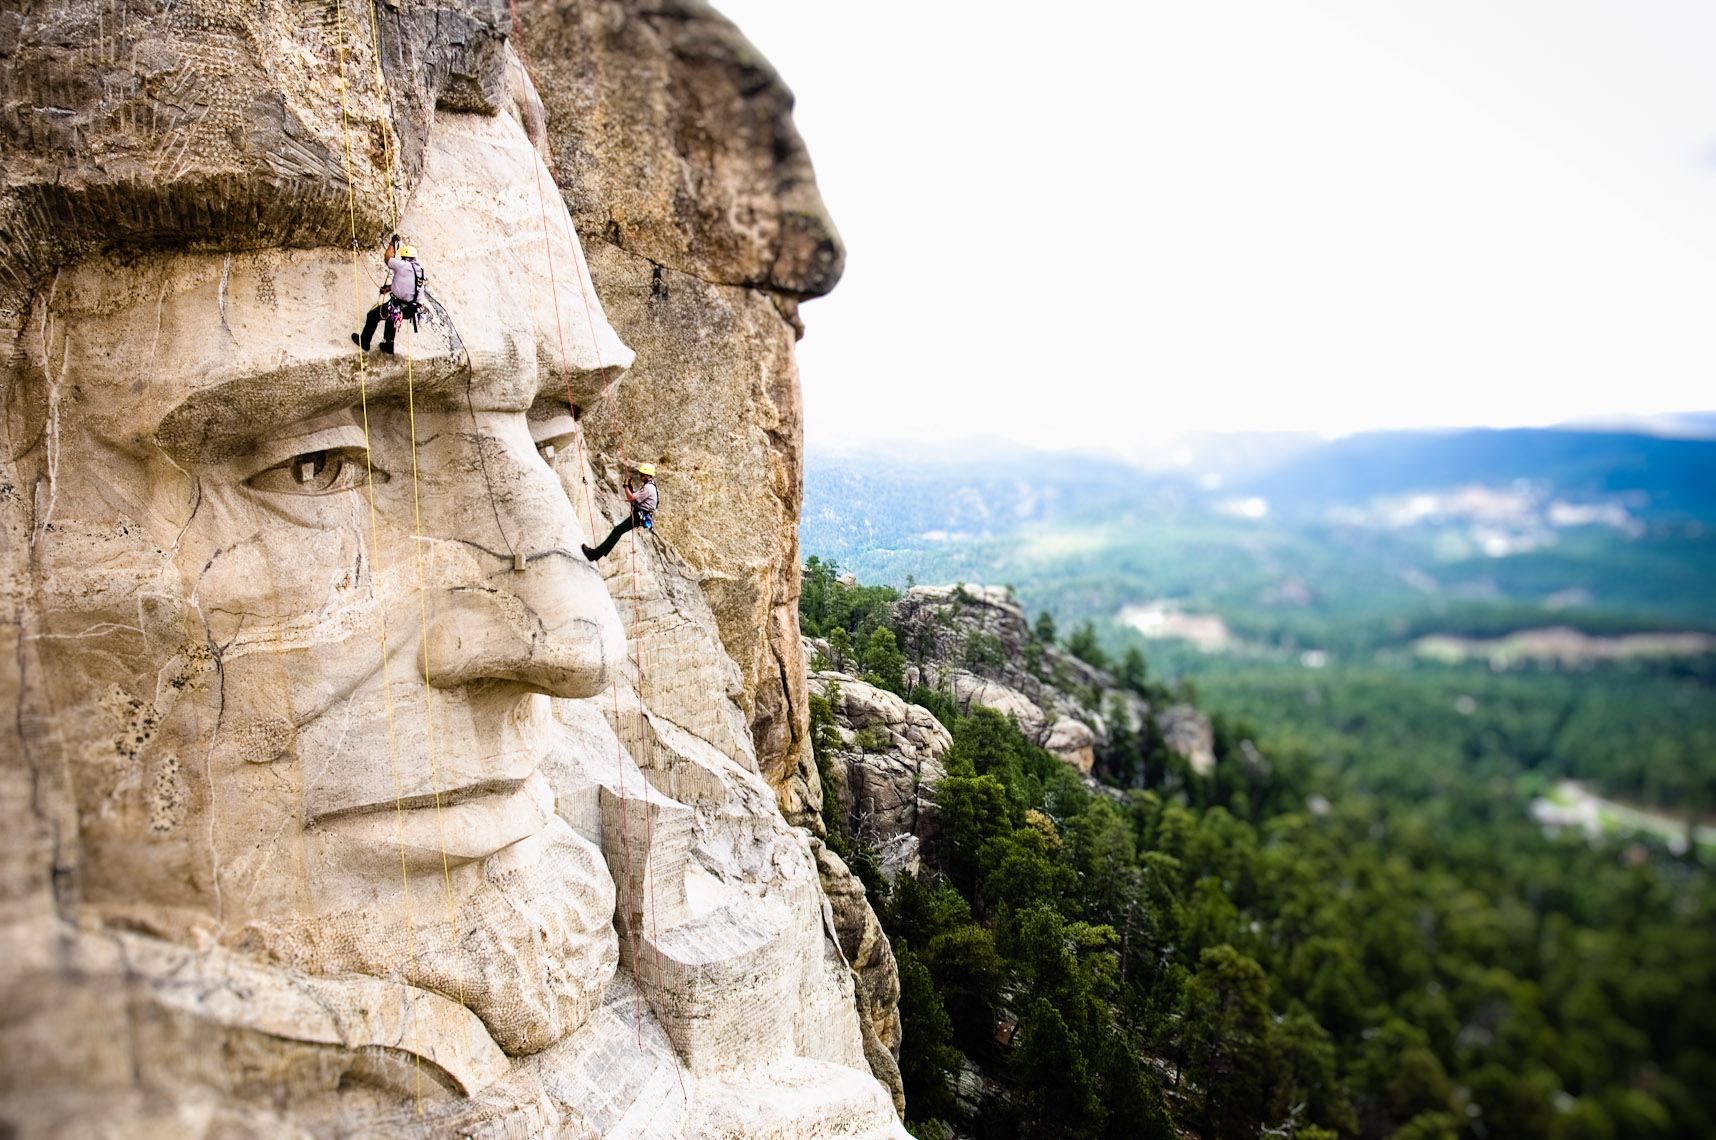 Kevin Steele - unique photo on the faces of  Mount Rushmore